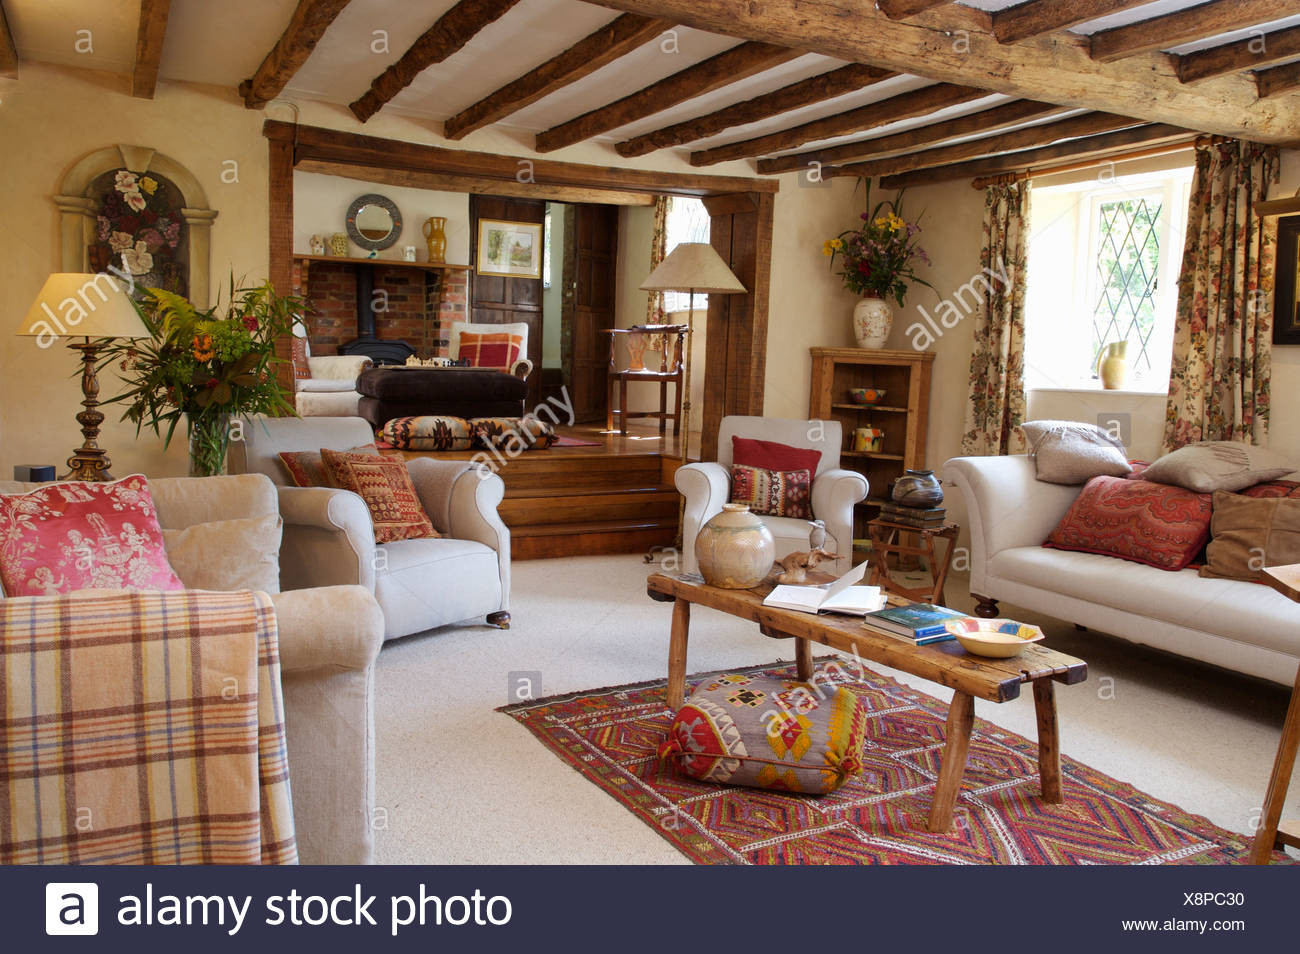 White Sofas And Armchairs With Rustic Wooden Coffee Table In Beamed Cottage Sitting Room With White Carpet Kelim Rug Stock Photo Alamy